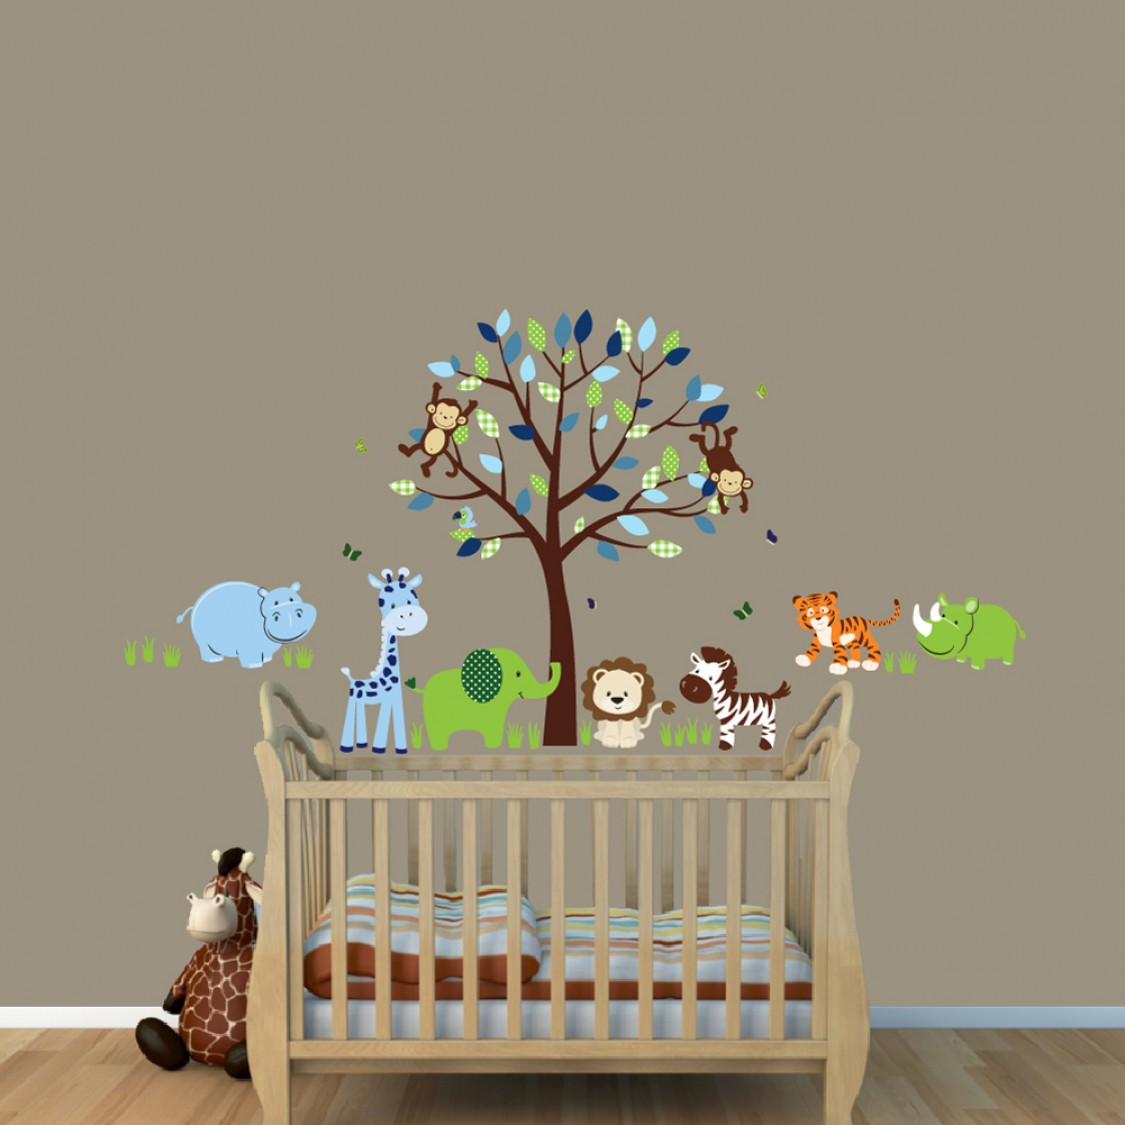 Green & Blue Jungle Tree Wall Decals With Hippo Decals For Childrens Playroom